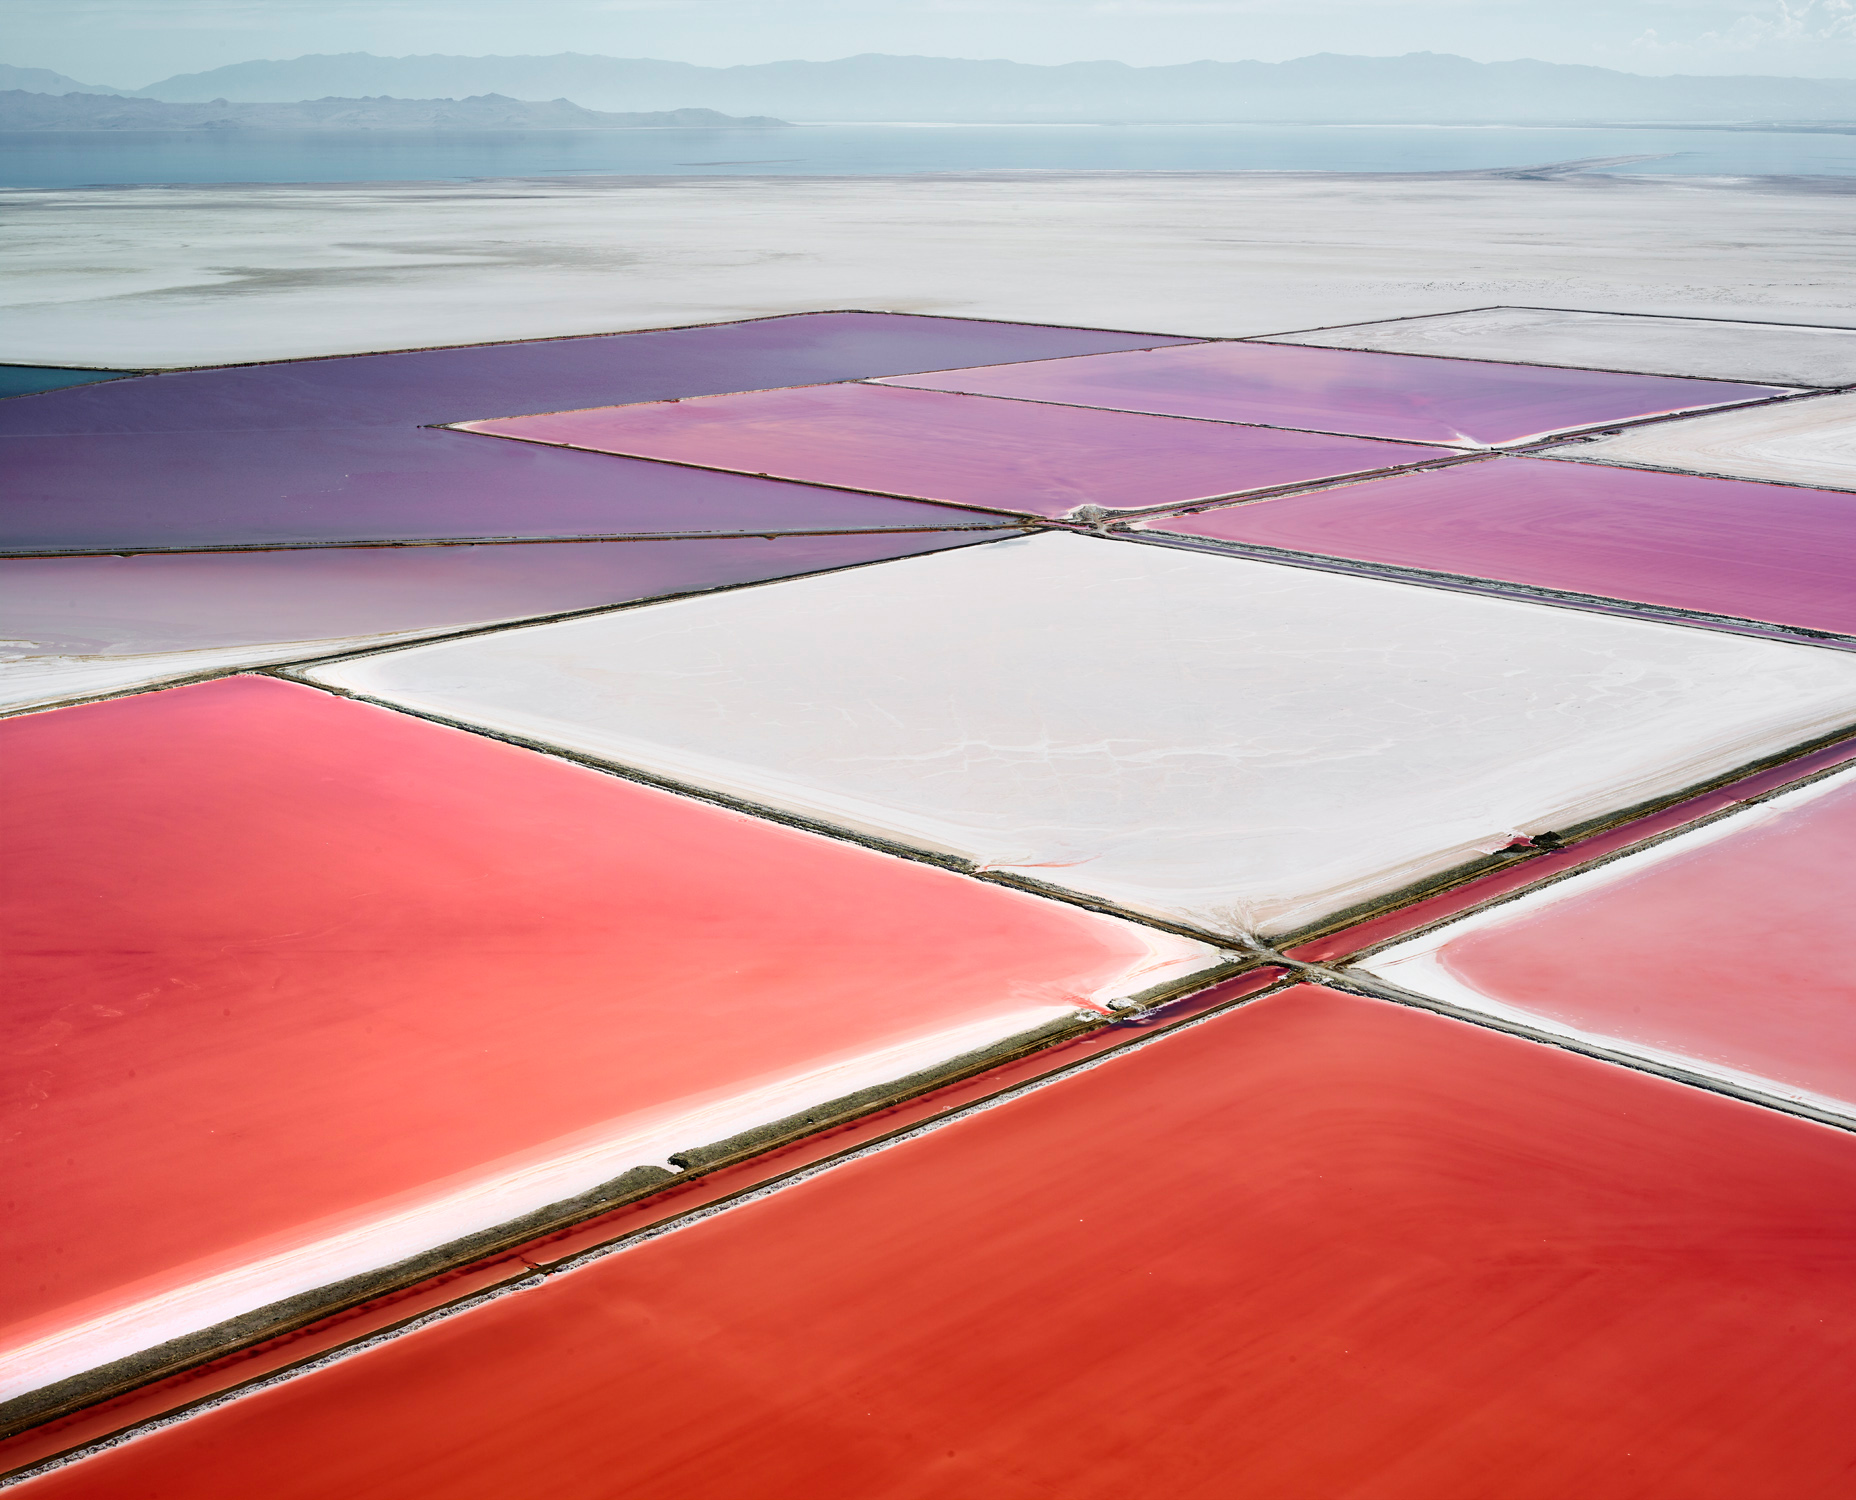 Saltern Study 14, Great Salt Lake, UT, 2015